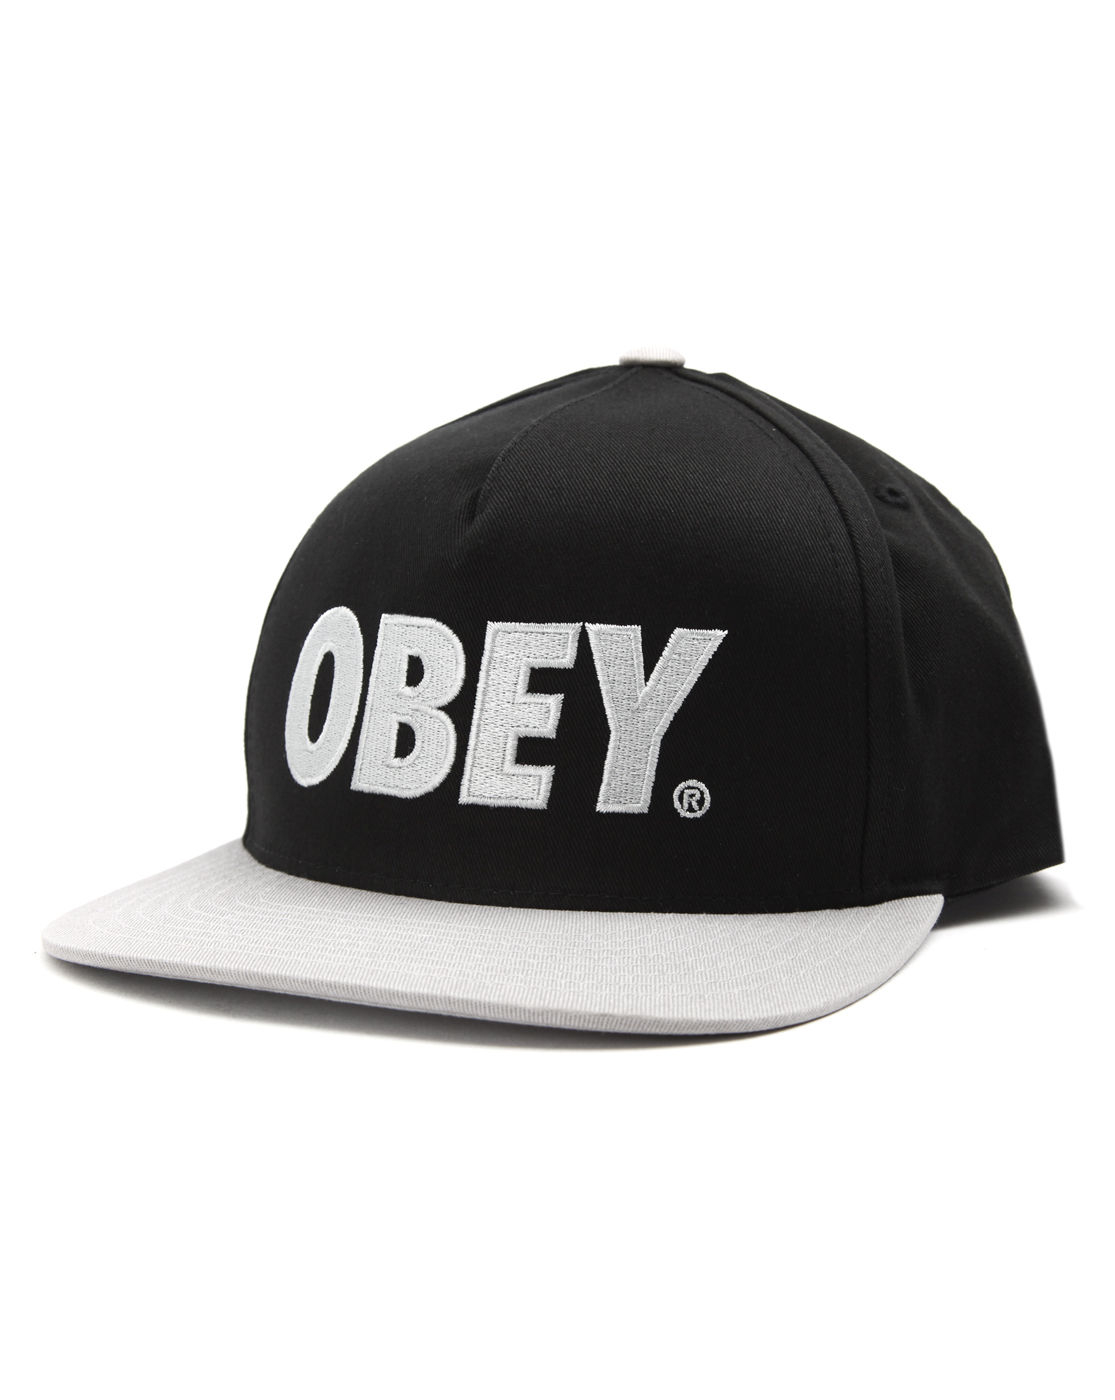 obey the city grey and black snapback baseball cap in